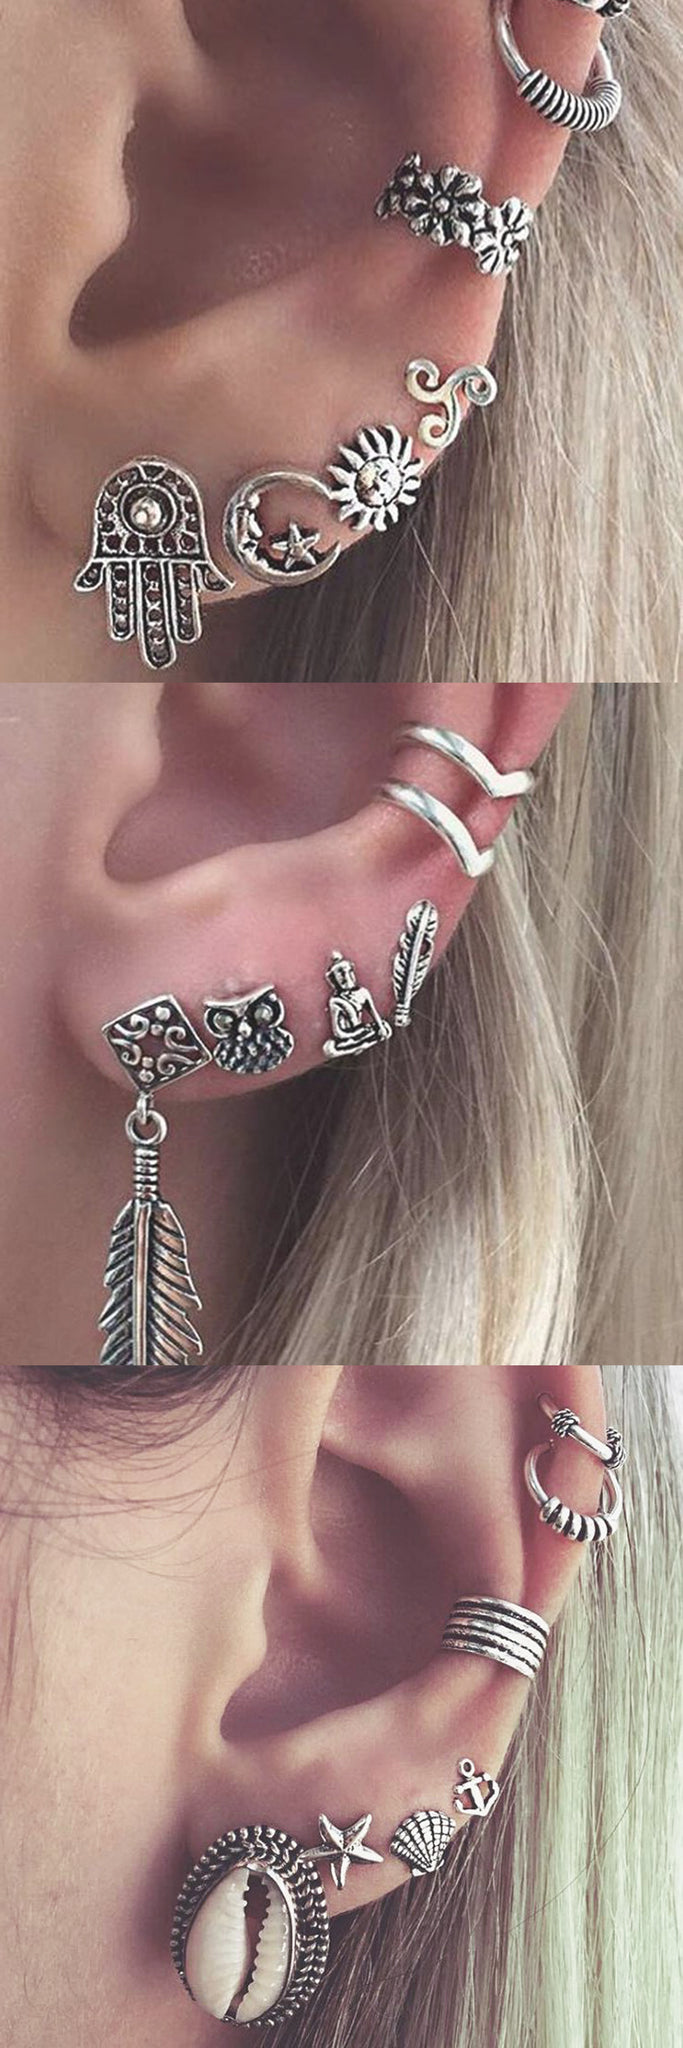 Tribal Boho Multiple Ear Piercing Ideas Combinations for Cartilage, Helix, Tragus, Rook, Daith, Conch - Aretes Oreja